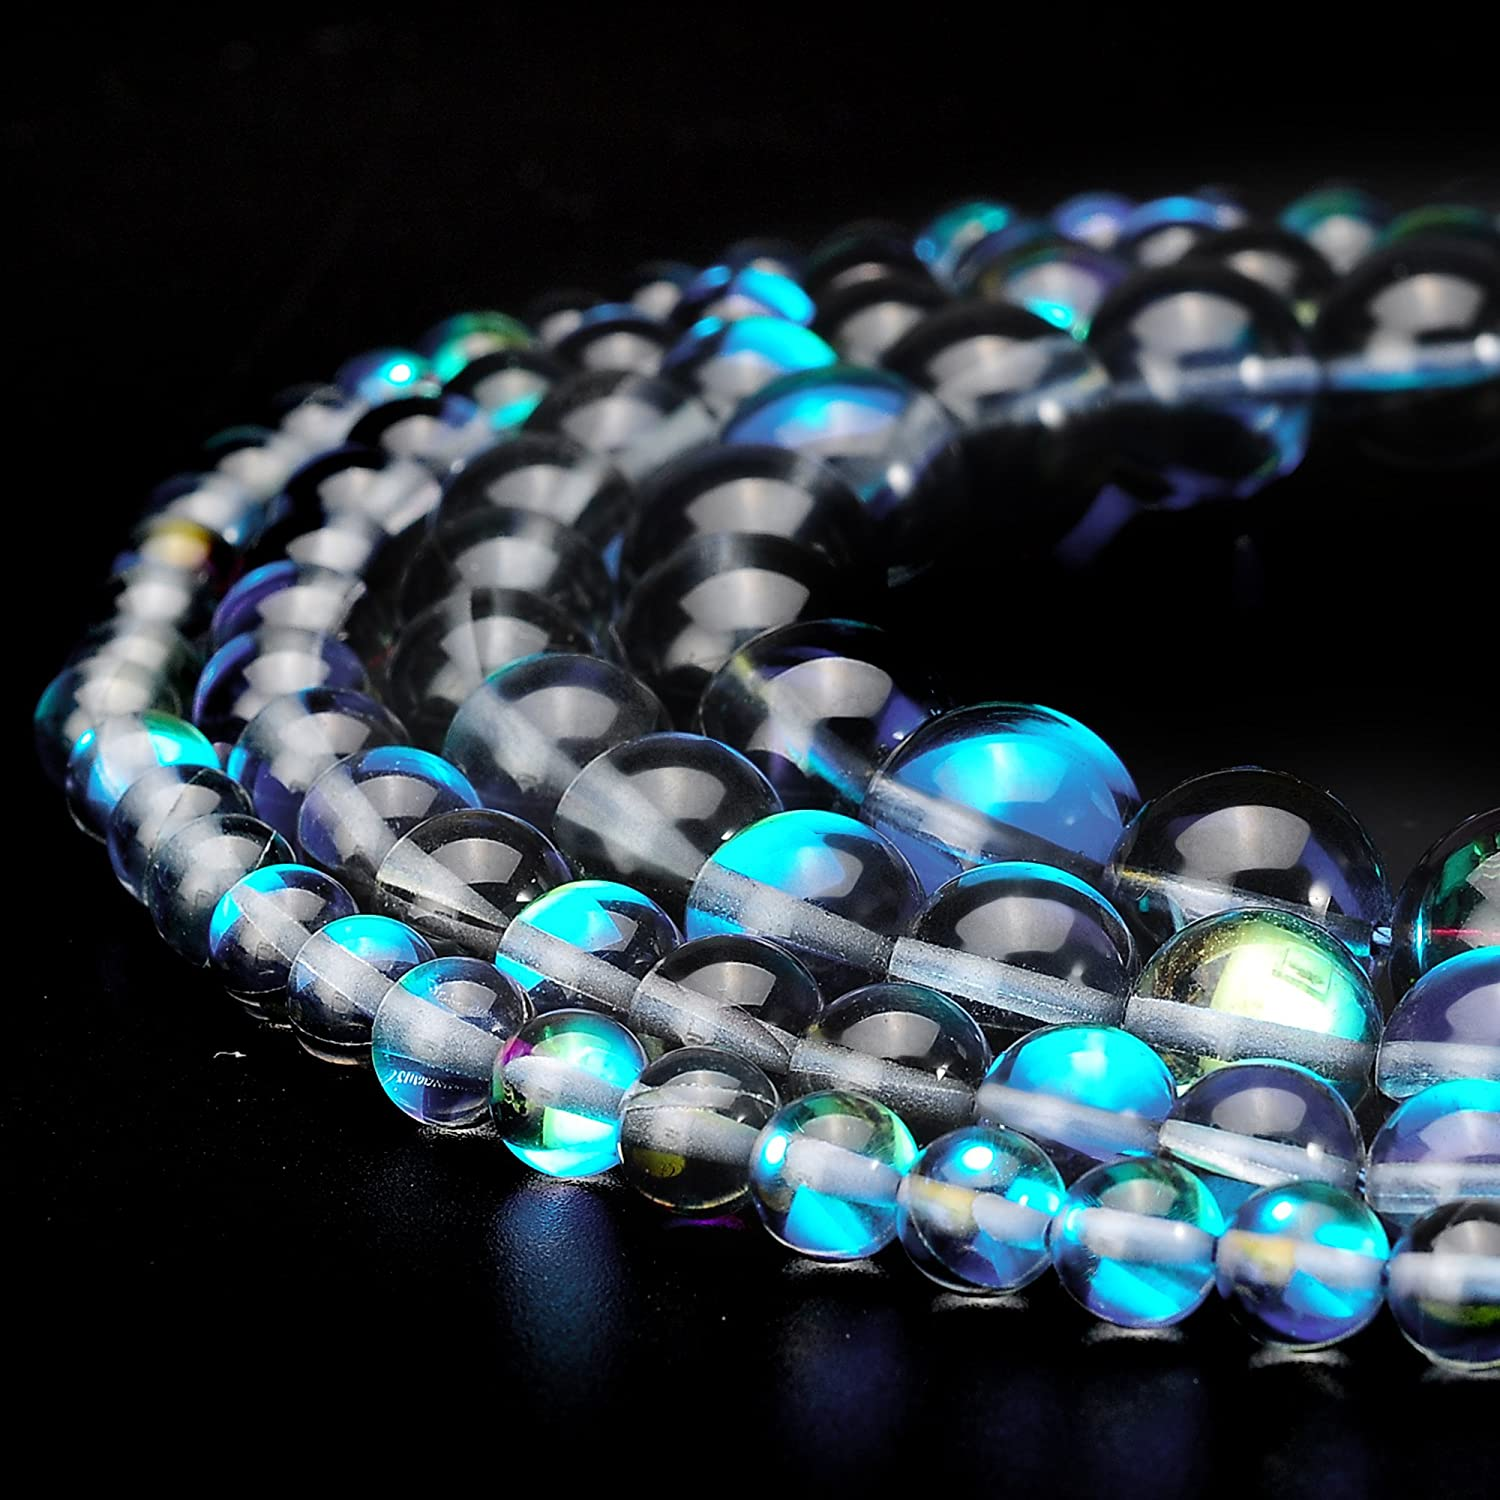 Rondelle Bead Approx 200 beads Jewellery Making Crystal Bead 2mm x 3mm Iridescent Rainbow Purple Grey Crystal Glass Faceted Bead Strand